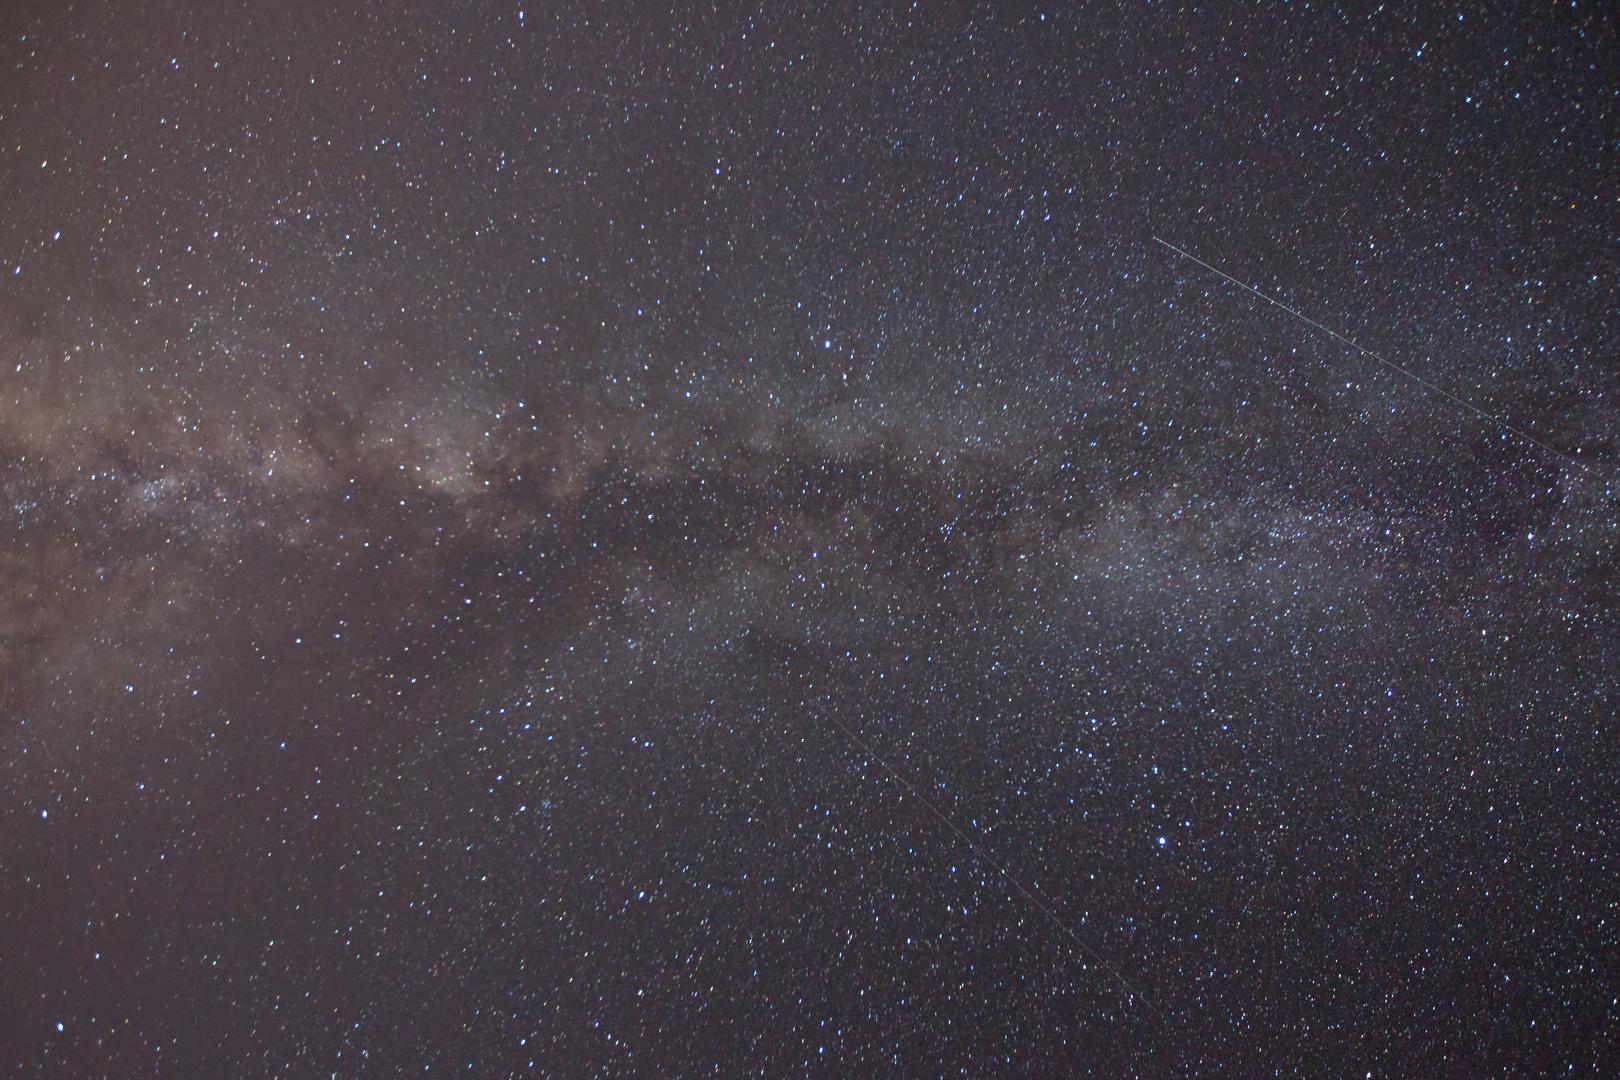 Milky Way and two Shooting Stars